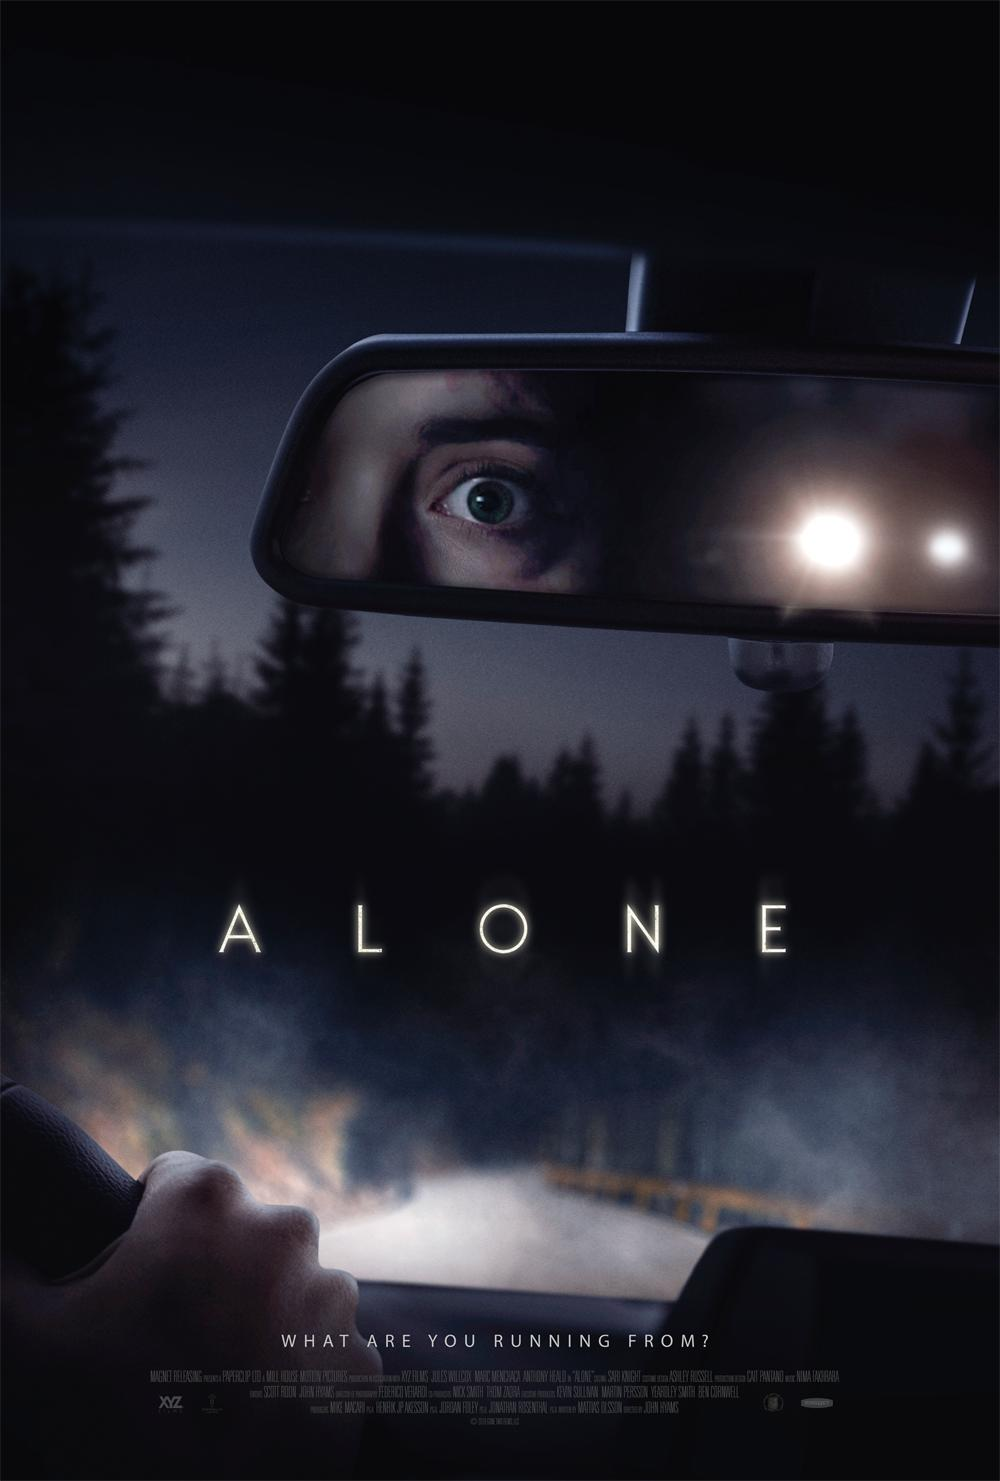 Alone (2020) Telugu Dubbed (Voice Over) & English [Dual Audio] BDRip 720p [1XBET]